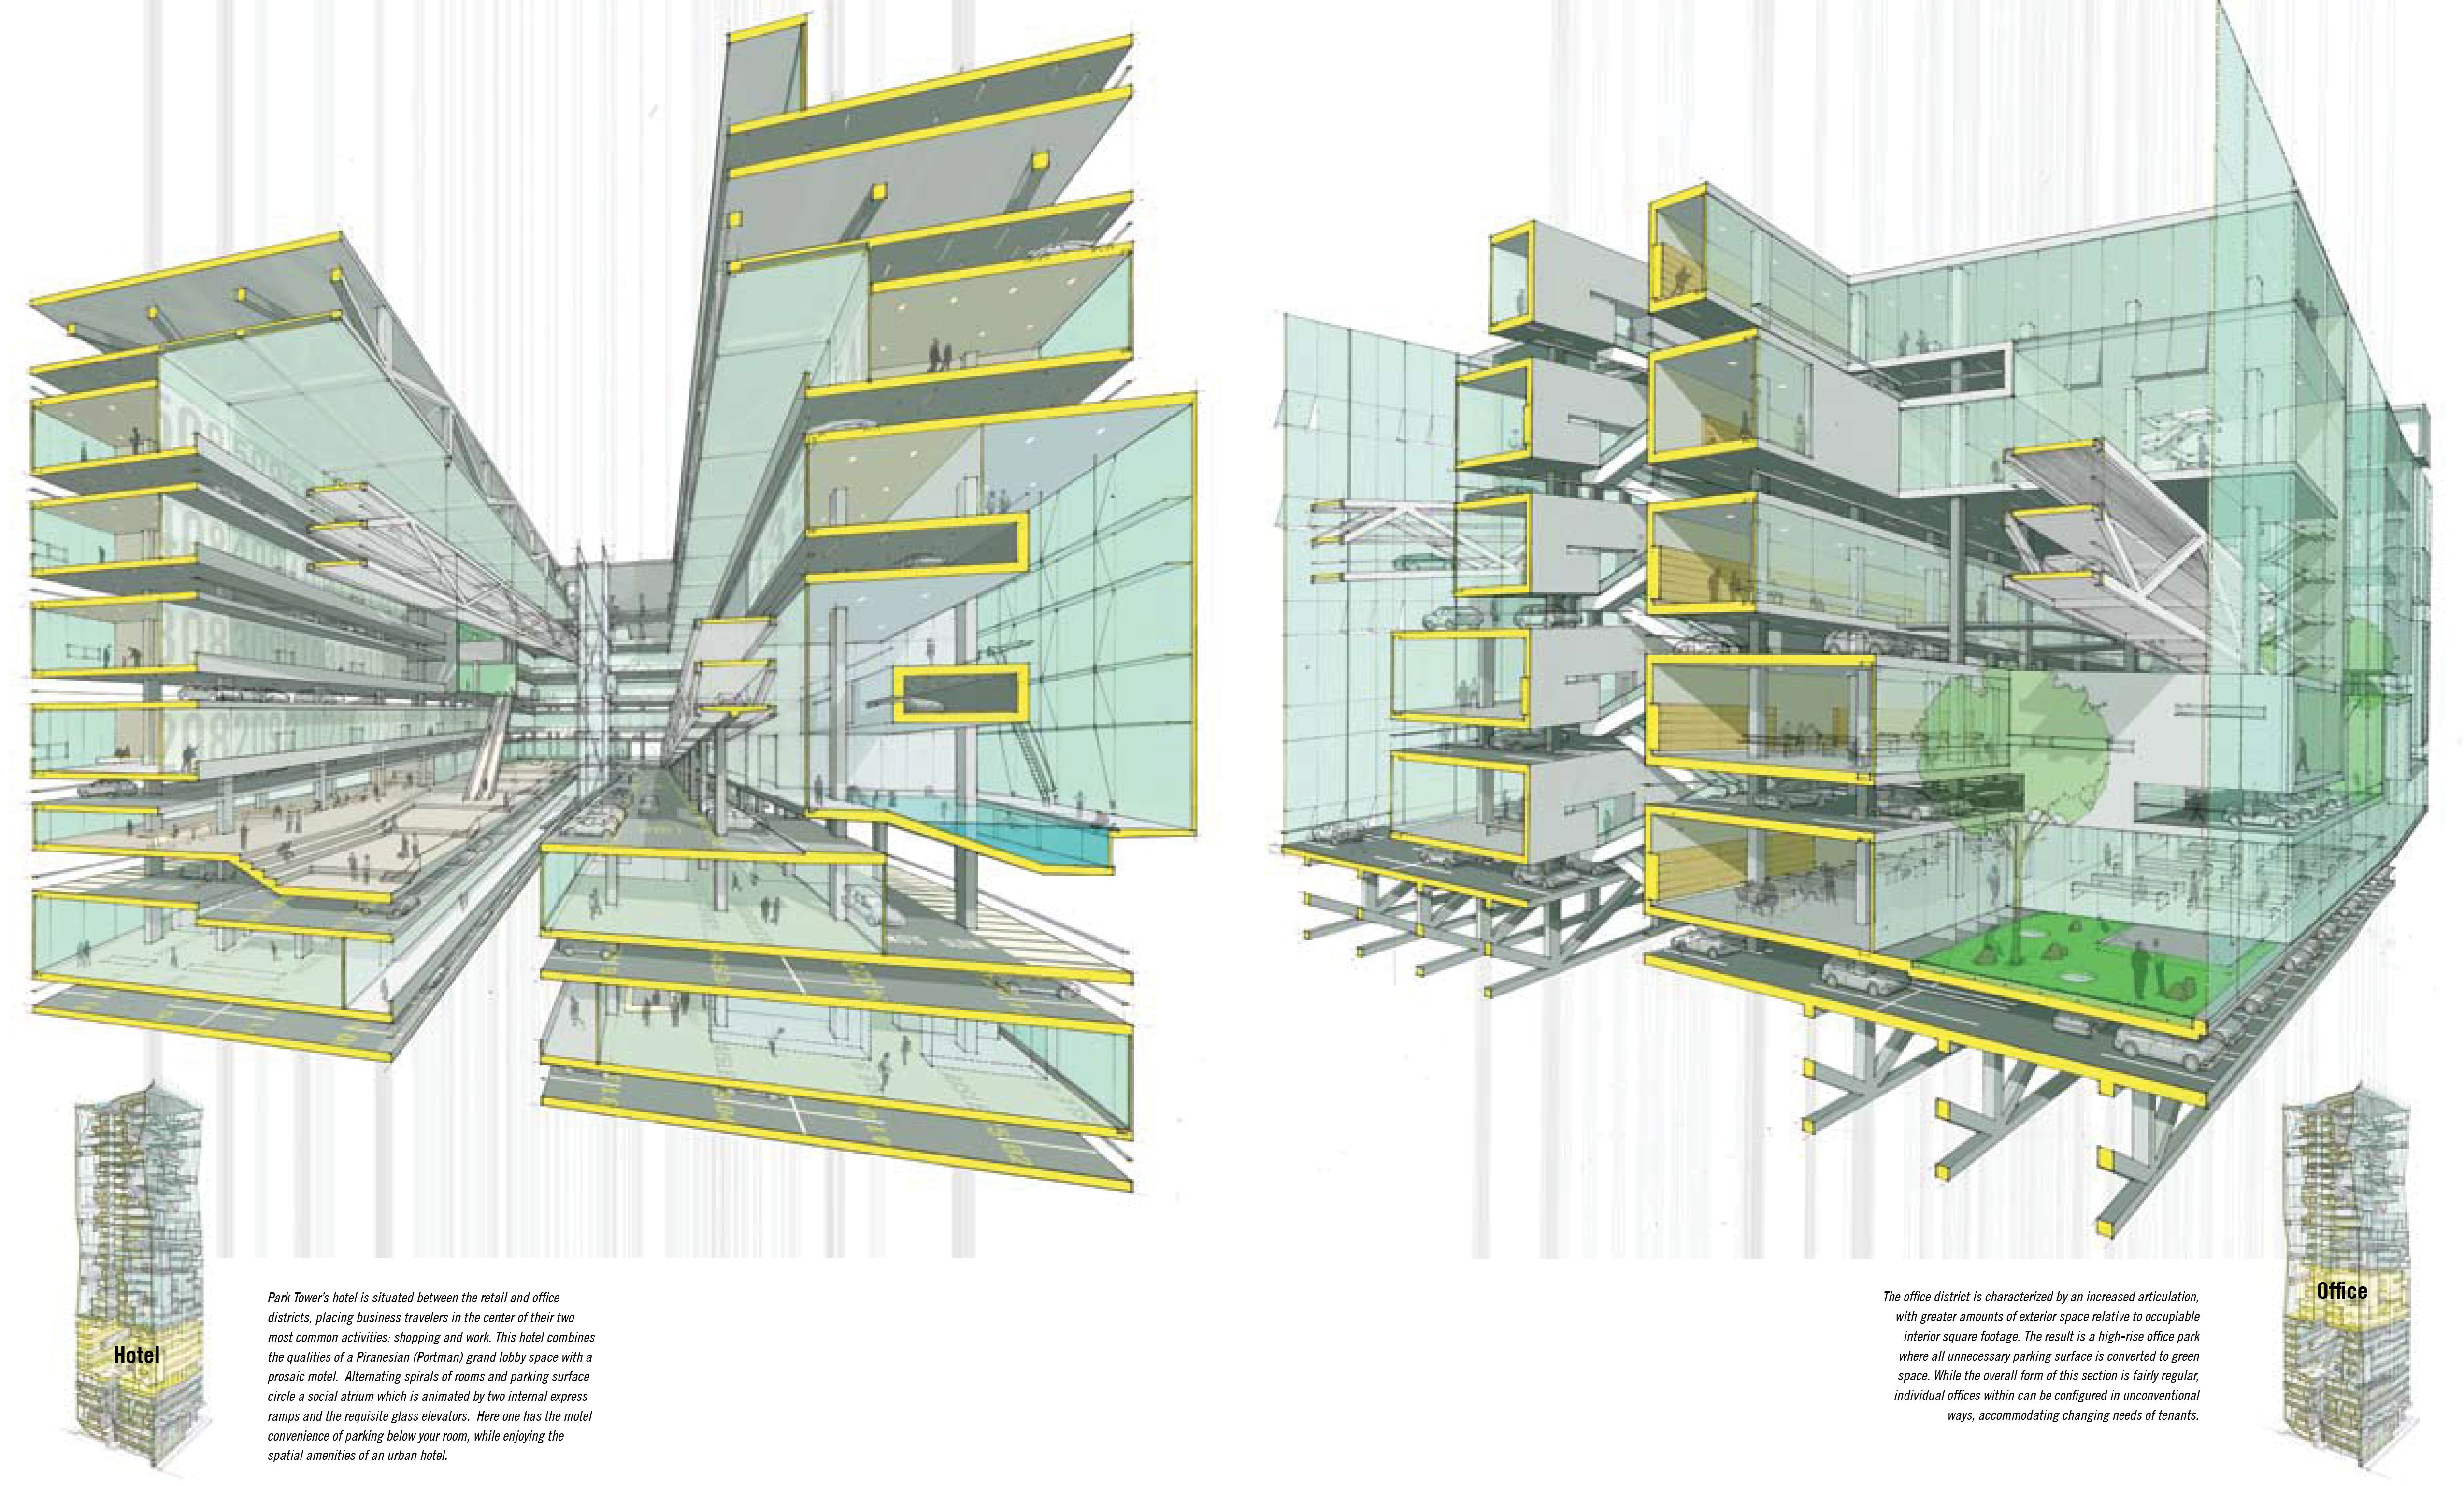 architecture section diagram 98 nissan maxima engine sectional perspectives dwgs pinterest perspective